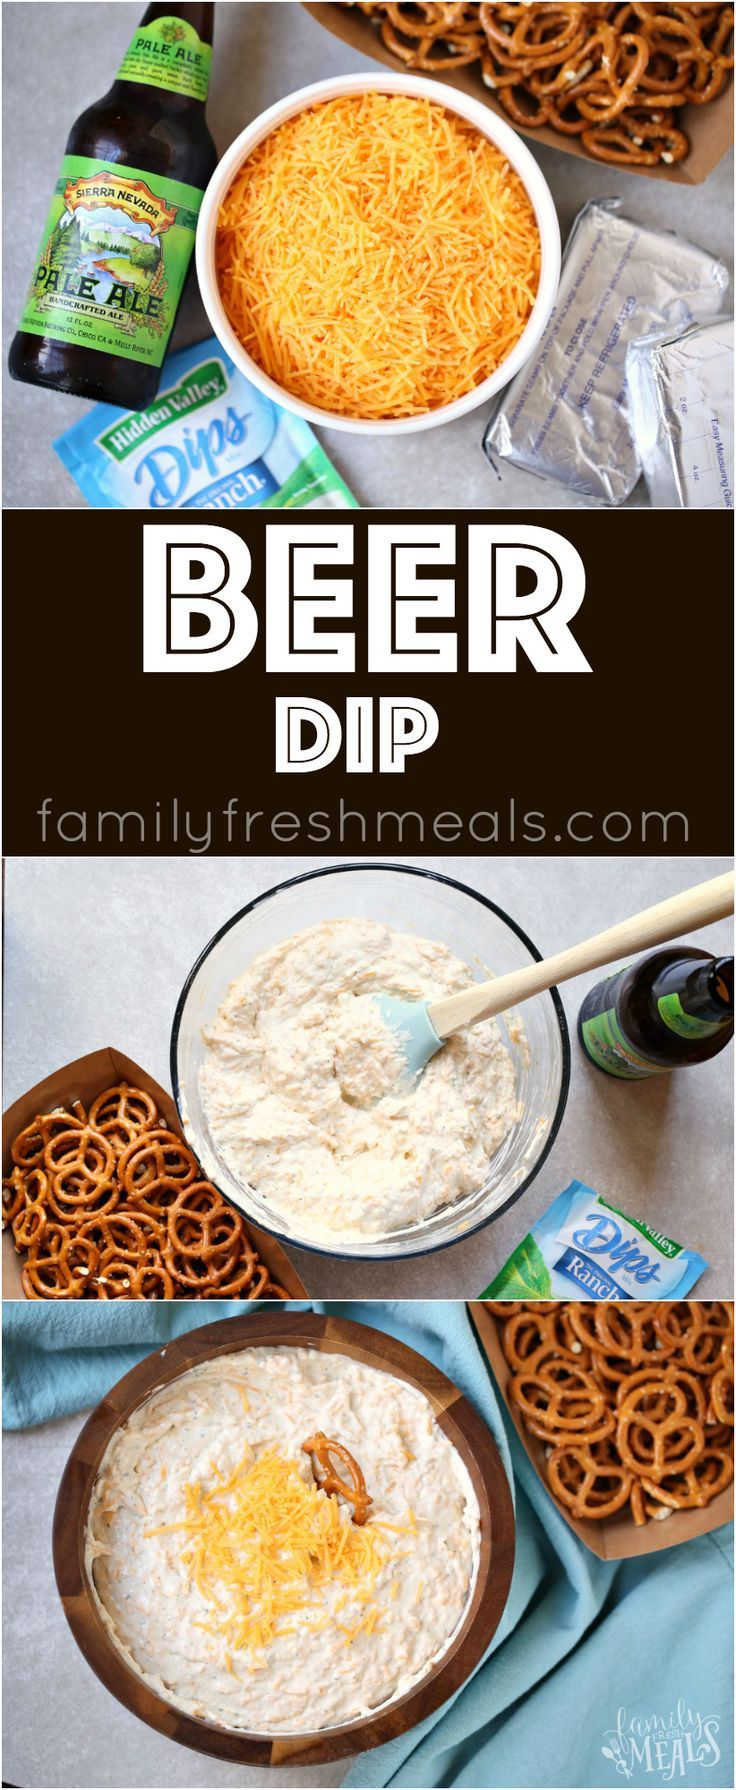 22 best recipes with beer images on pinterest delicious recipes beer dip party food recipesbeer forumfinder Image collections